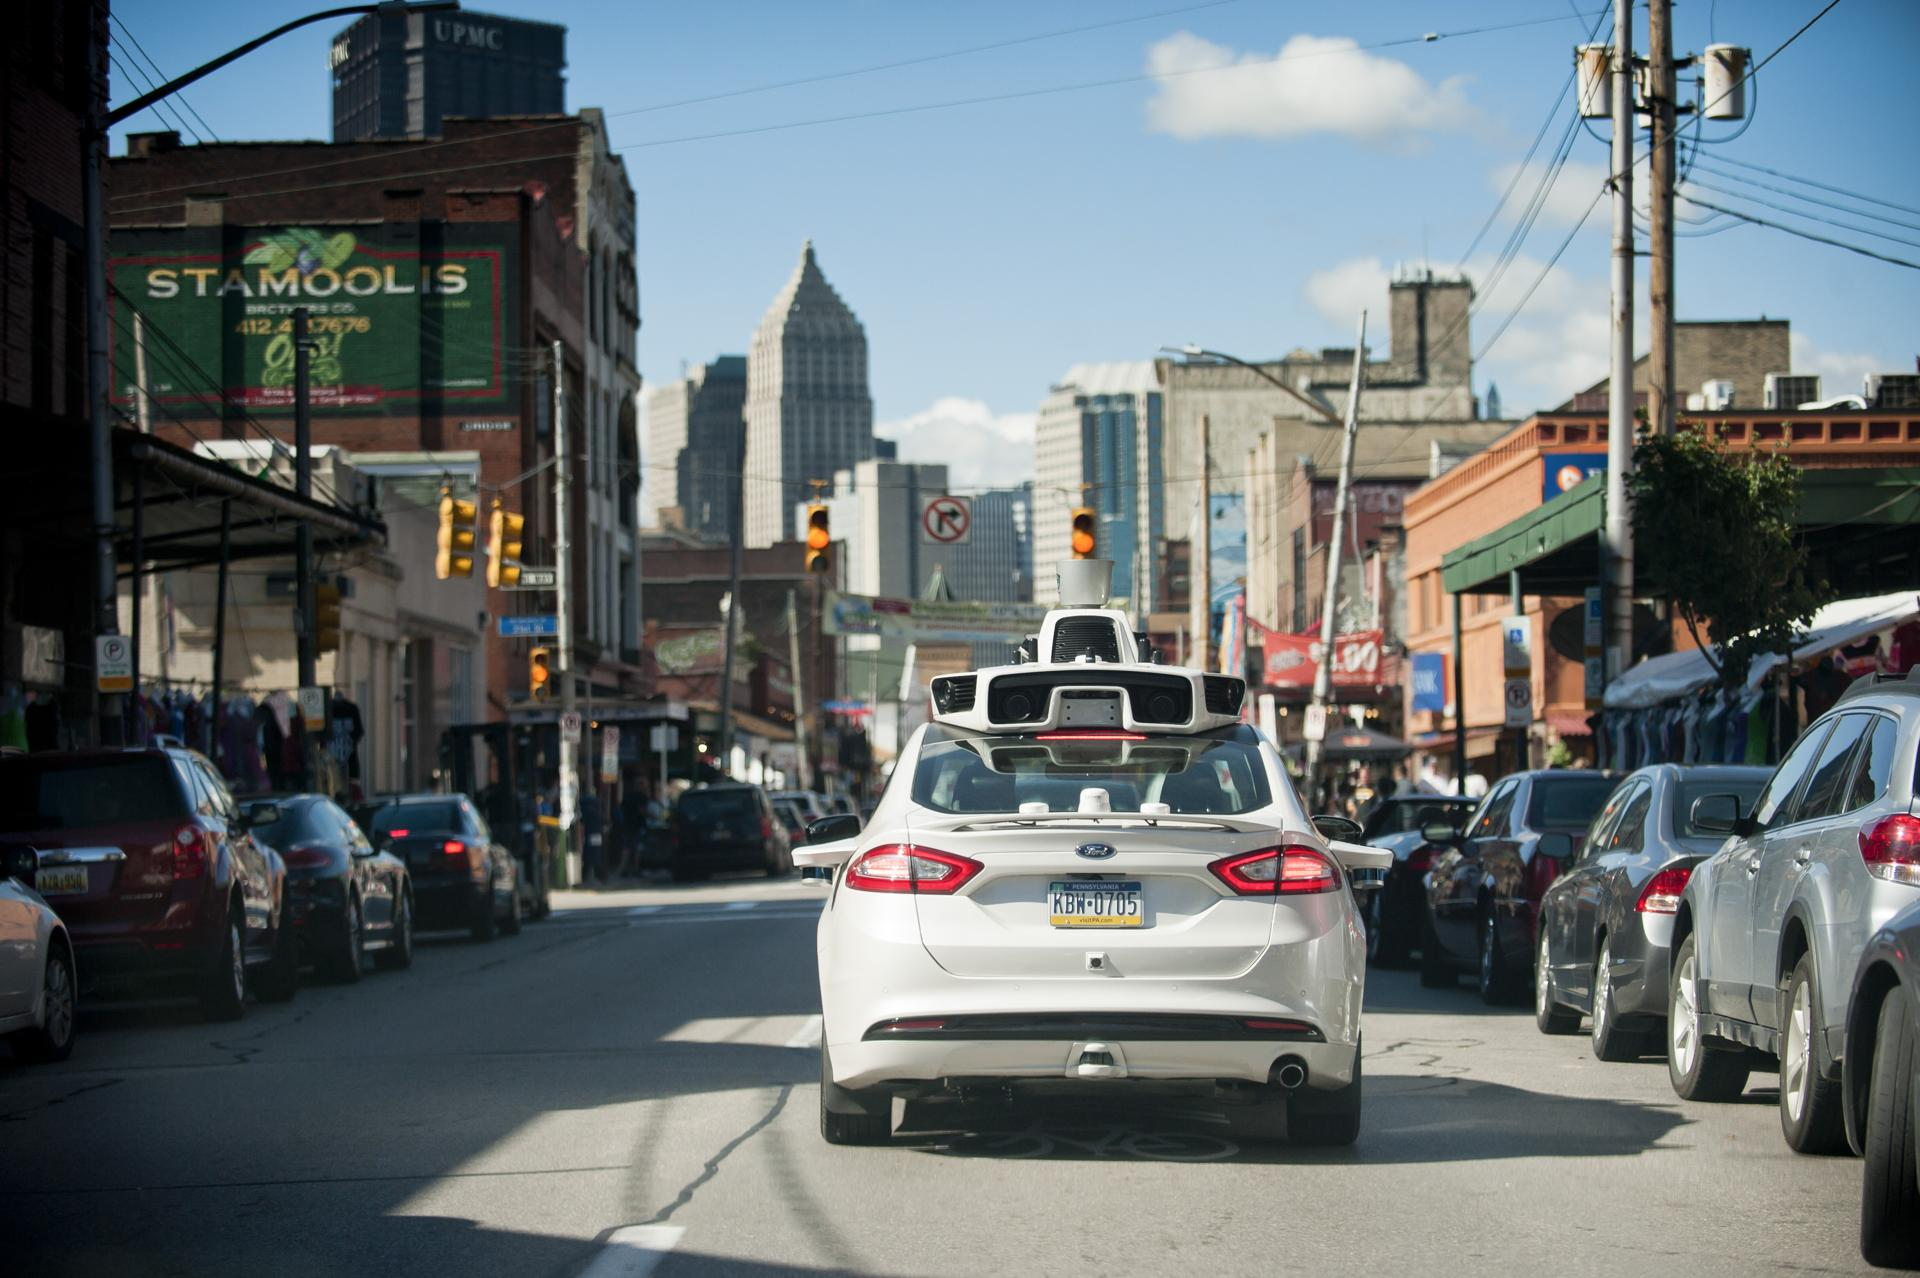 Uber's self-driving car drives through the city for mapping and topography purpose.